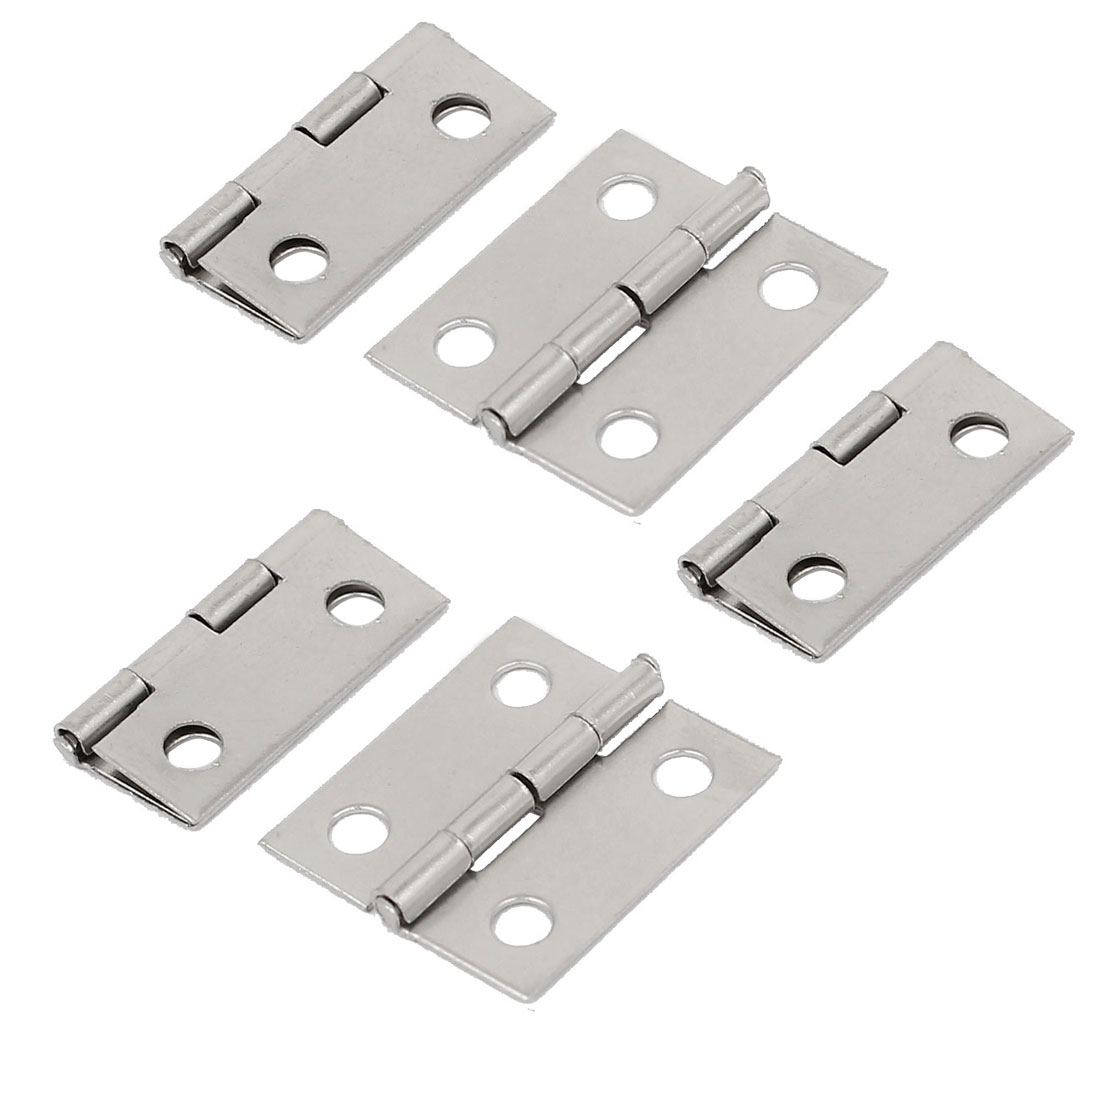 Jewelry Box Case Door Foldable Butt Hinges Silver Tone 18mm Length 5PCS